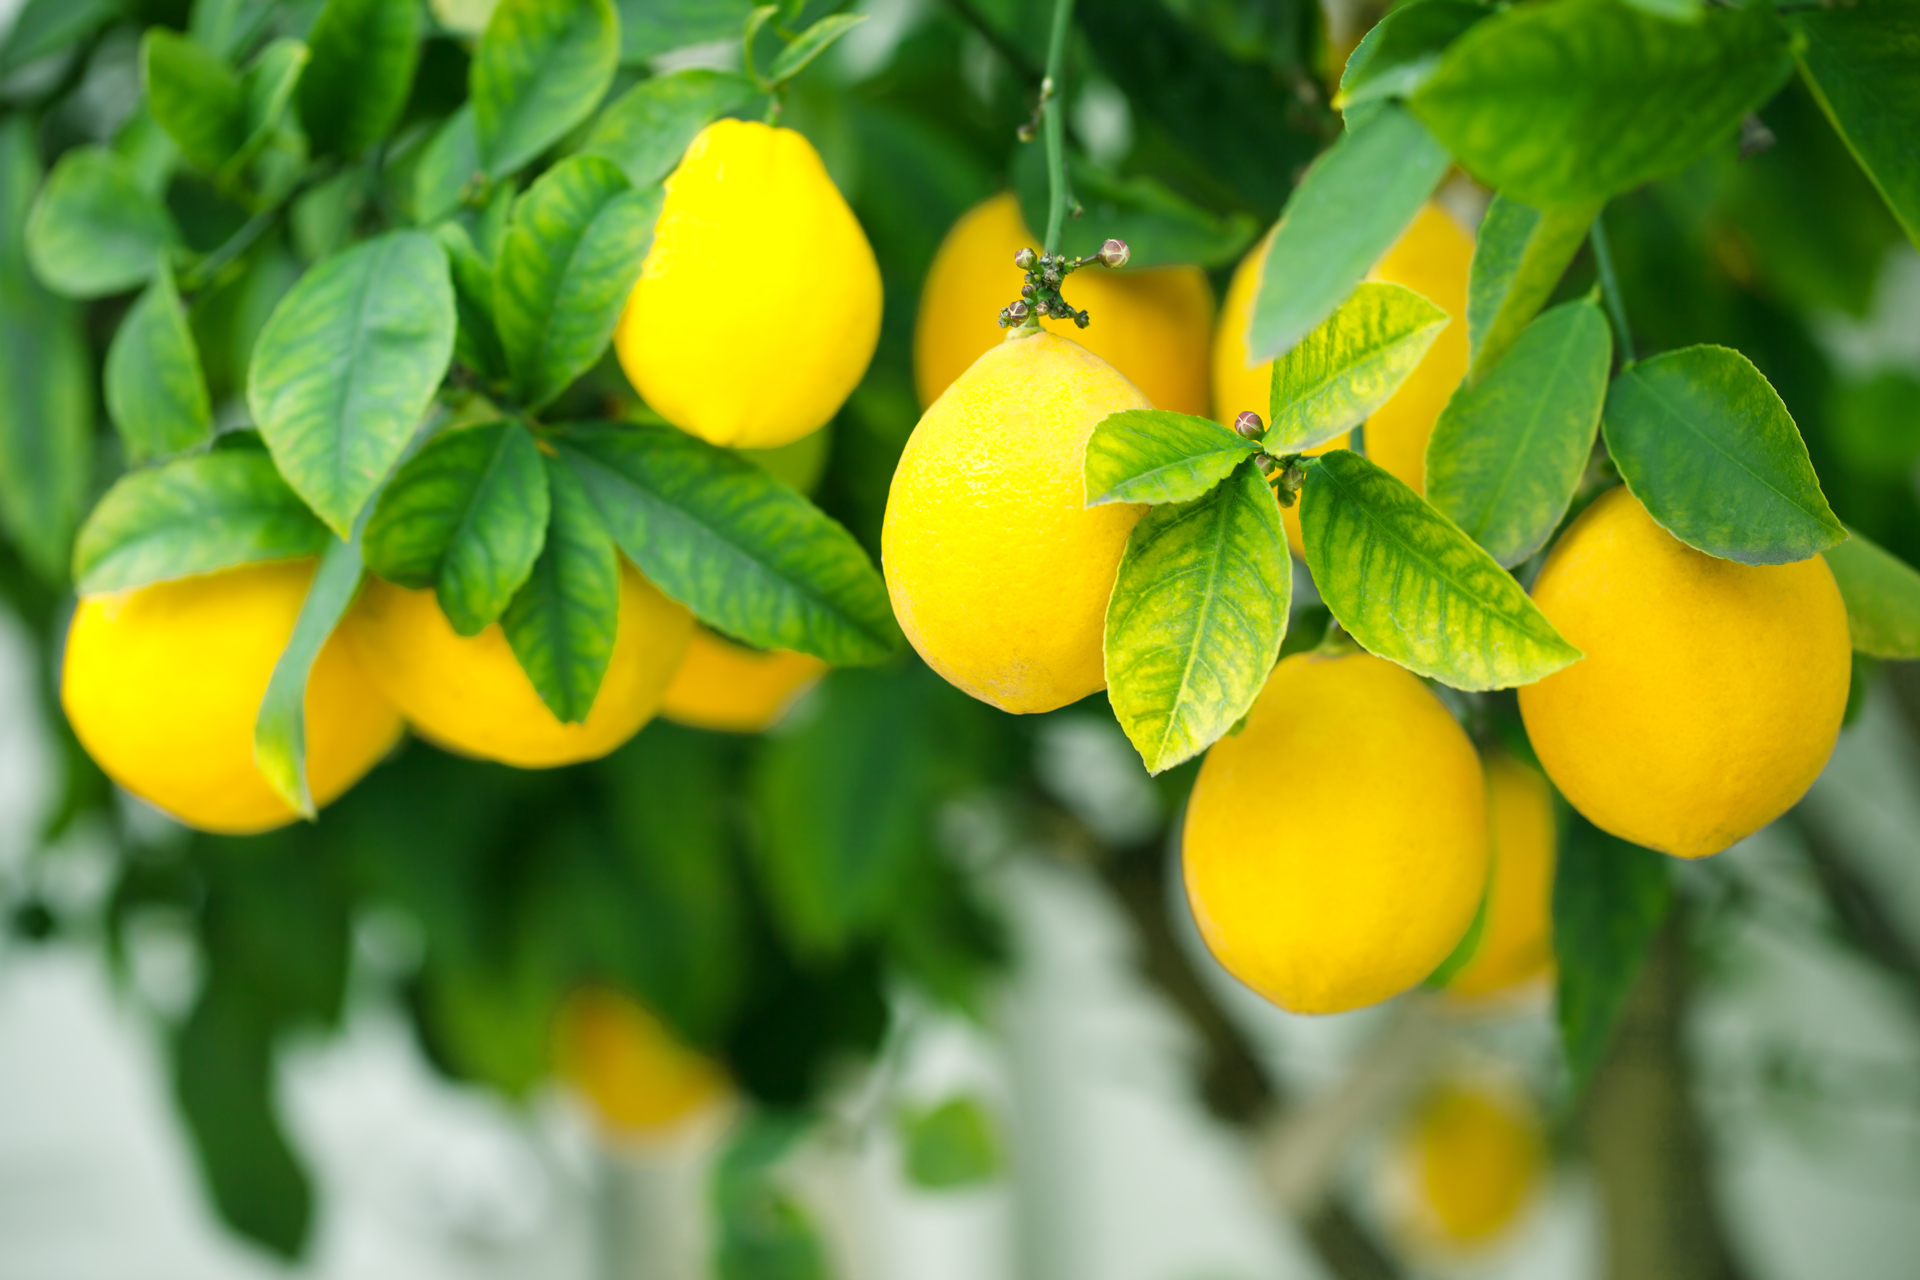 4 Lemon Diffuser Blends to Help You Smile, Focus, Energize, and Refresh